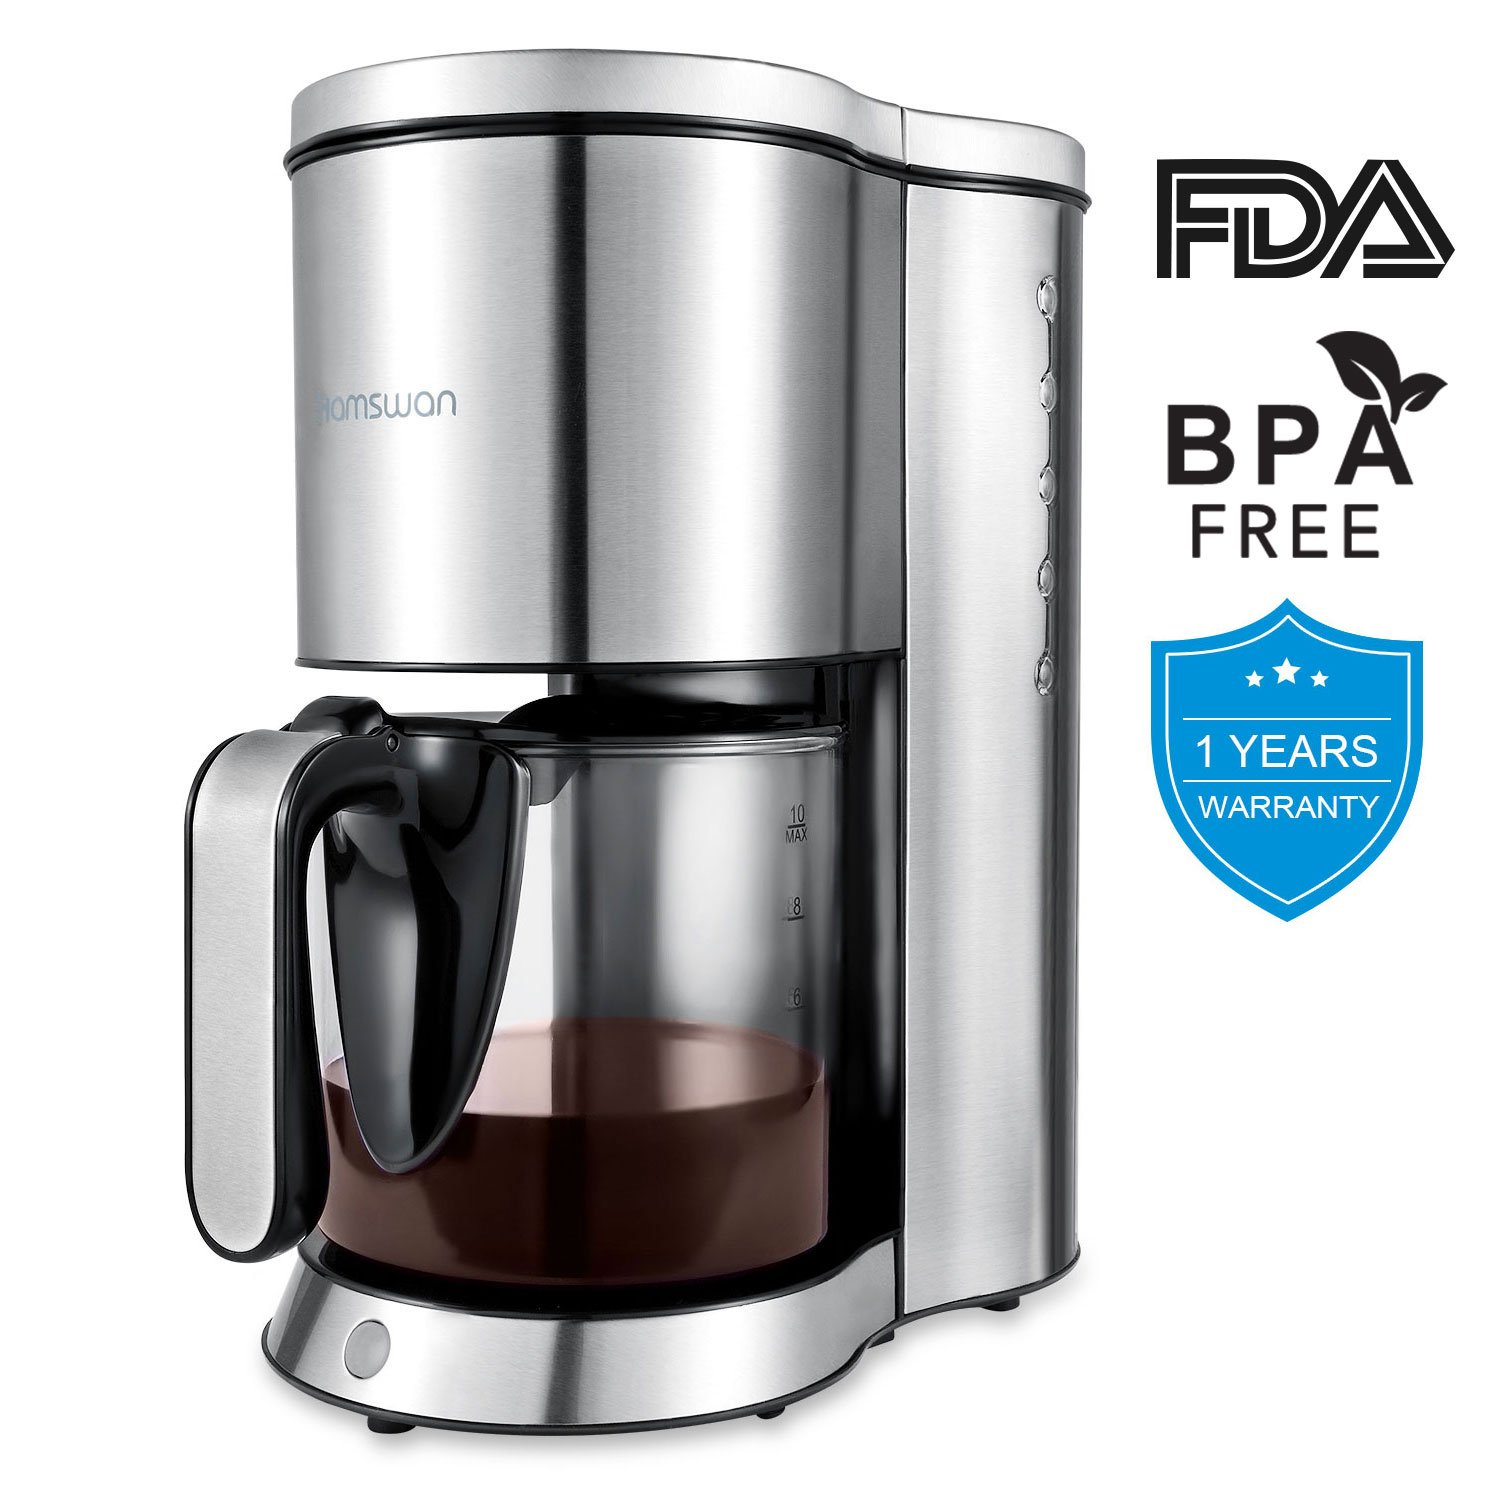 Drip Coffee Maker, HAMSWAN AD-103 Stainless Steel Coffee Maker Coffee Pot, Small 10 Cup Coffee Machine with Glass Thermal Carafe, Insulated, Keep Warm, Automatic Shut Off for Single Serve & House Use by HAMSWAN (Image #1)